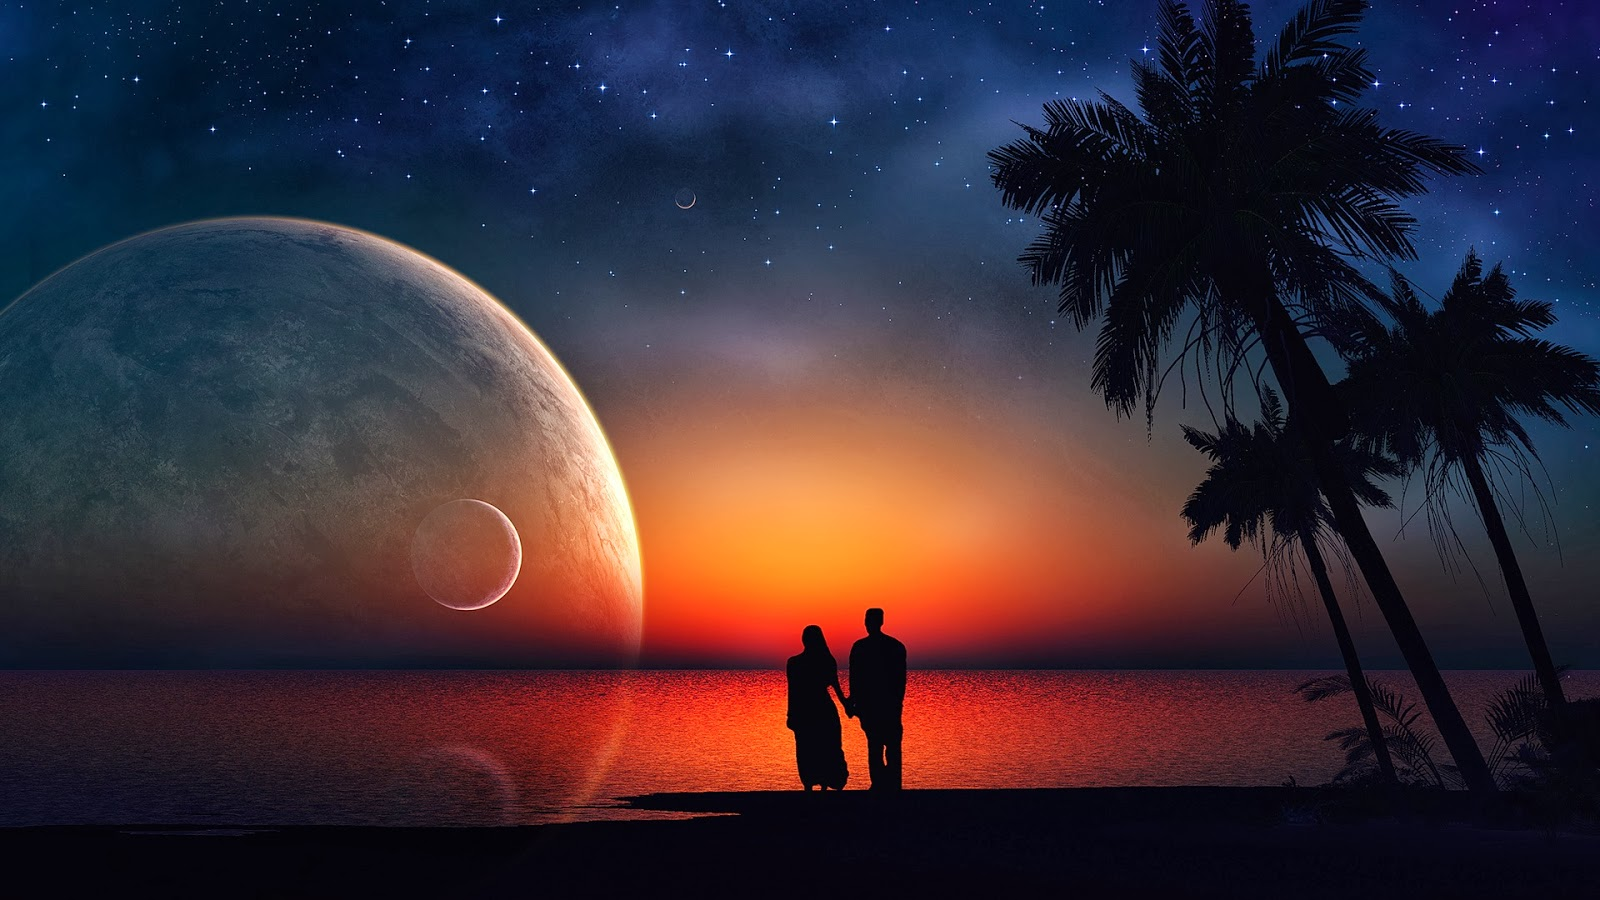 Romantic Love couple Kiss Wallpaper : Romantic Love Pictures for her - Hug and Kiss, couples Dance in Moonlight Wallpaper, Images, Photos